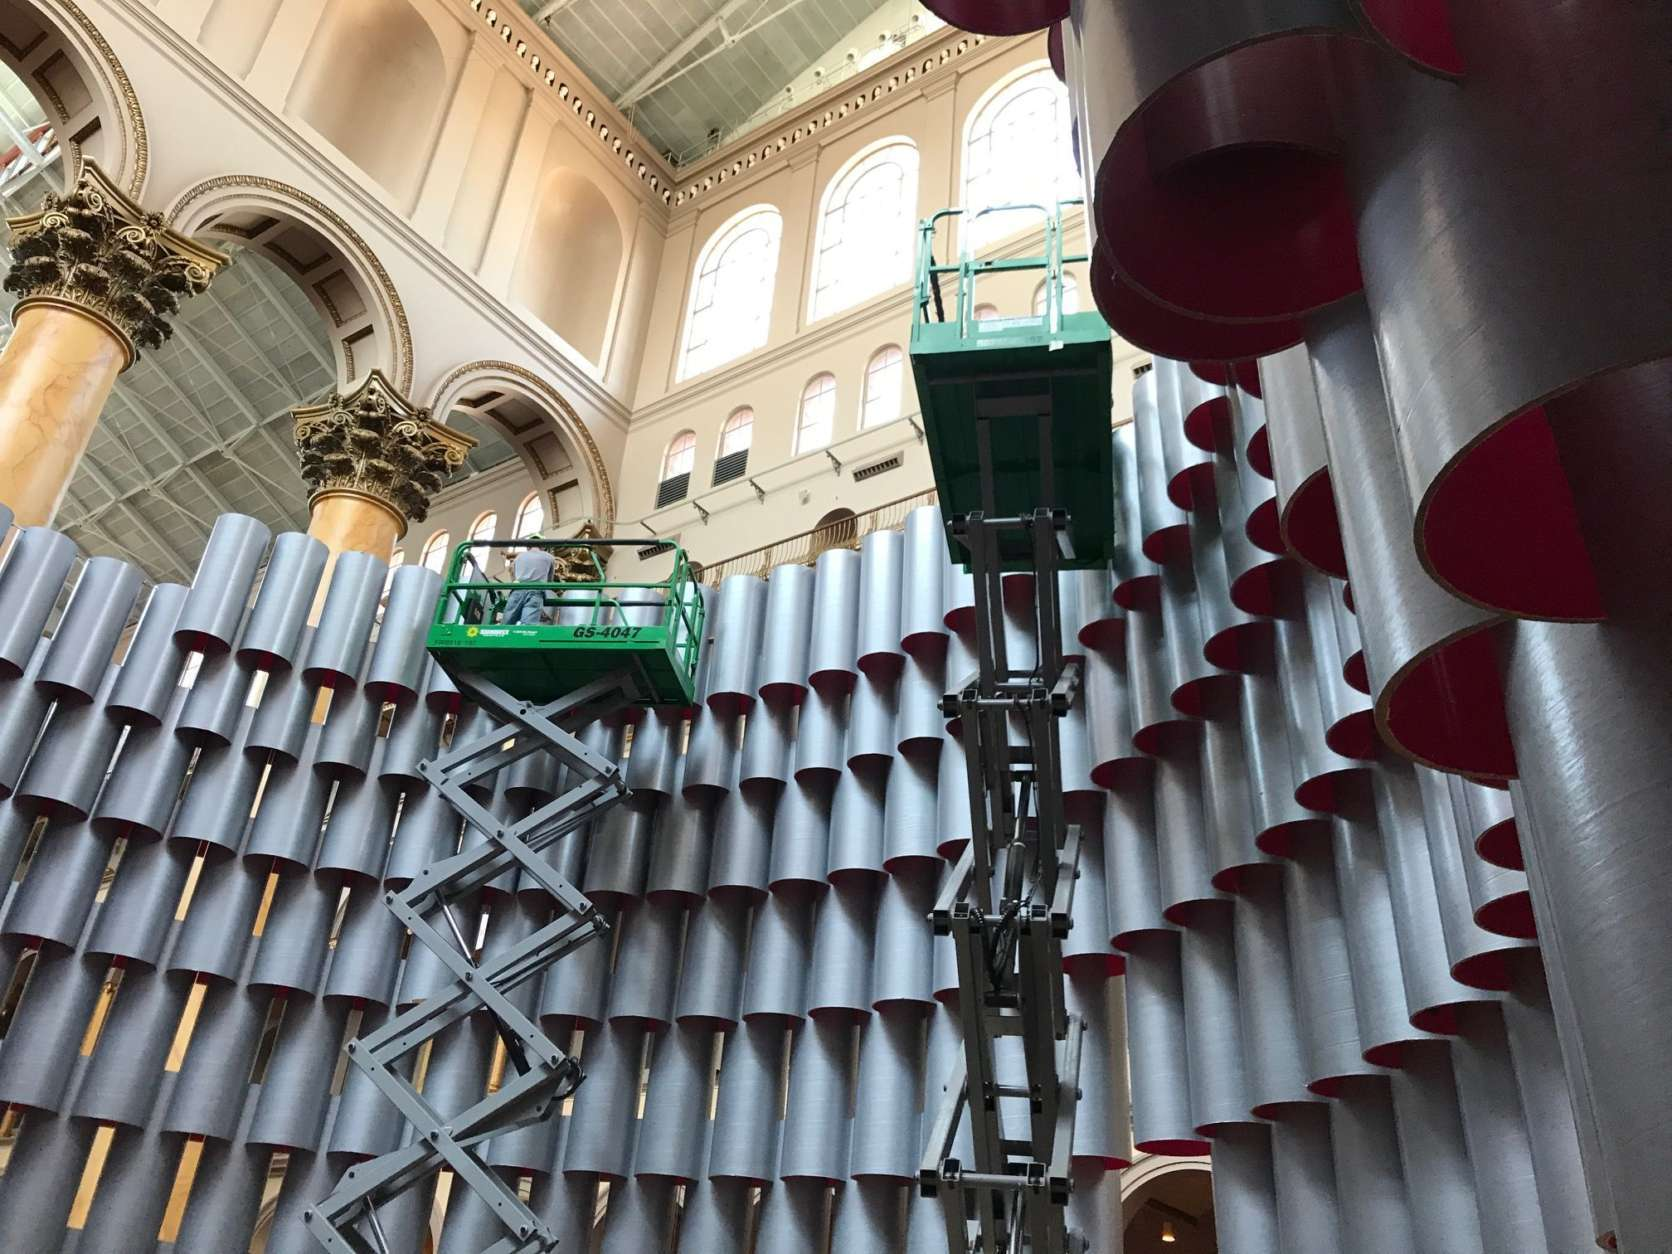 This summer marks the fourth year the museum has commissioned an architect to come up with a themed installation to fill its Great Hall, which is 316 feet by 116 feet and approximately 15 stories tall. The Chicago firm Studio Gang is the mastermind behind Hive.  (WTOP/Rachel Nania)